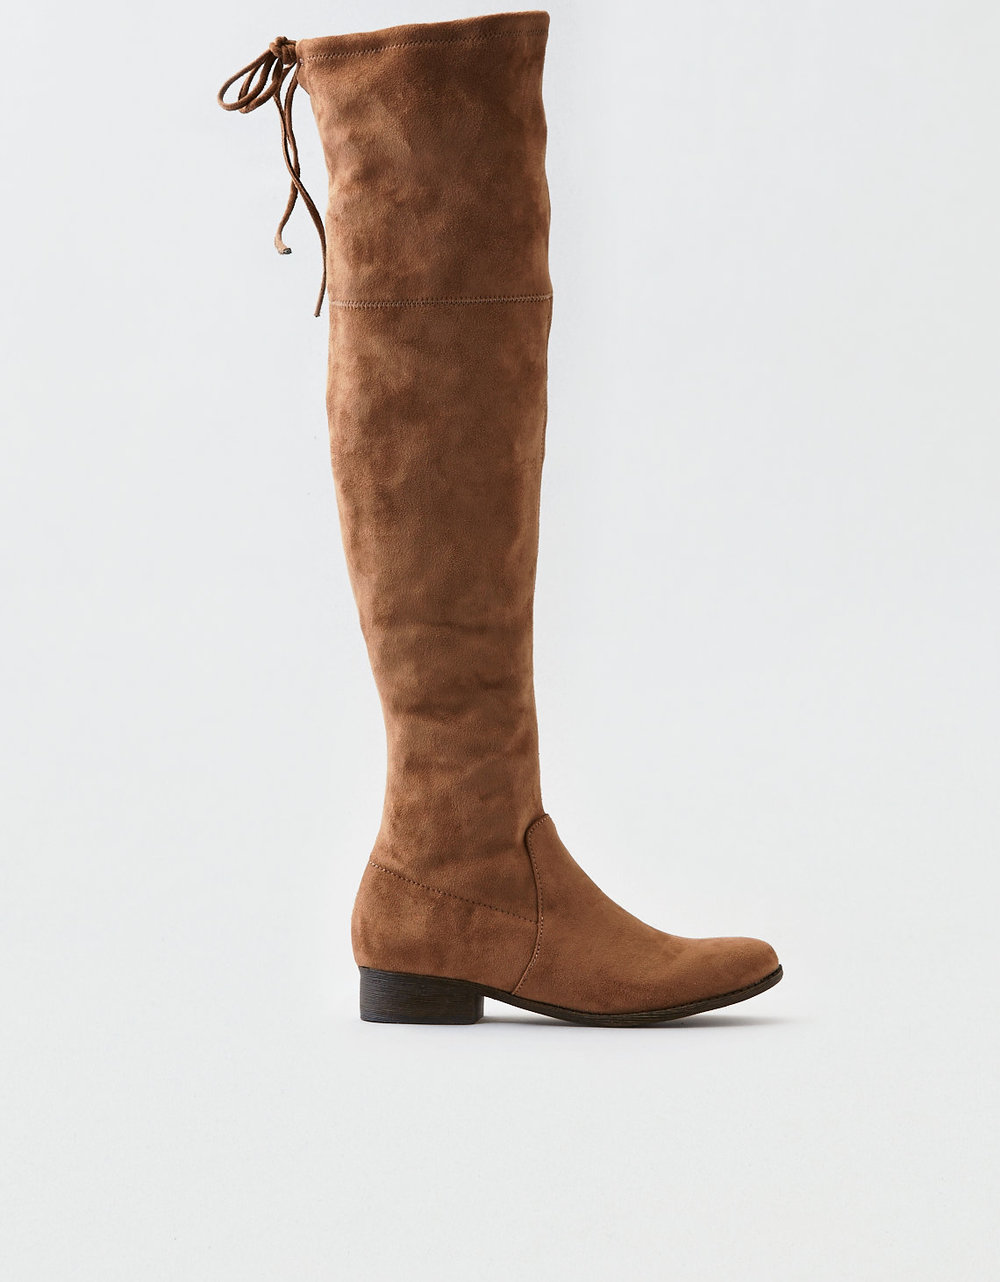 AEO OVER THE KNEE BOOT $70